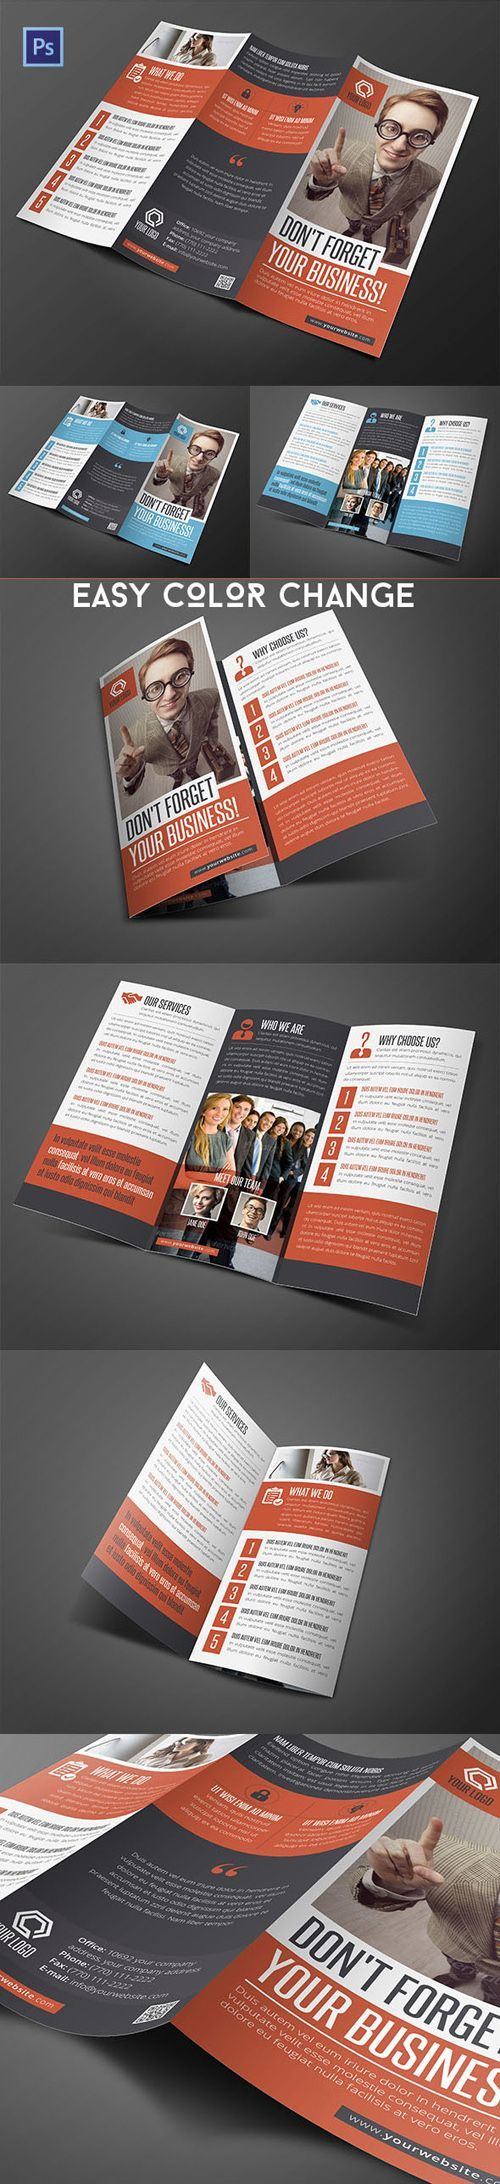 Brochures remain a critical print marketing tool in today's fast-paced world, and the quality of design and content can make all the difference for customers. The team at Printing Fly believe that high quality brochures should form a cornerstone of any serious Los Angeles business' print marketing strategy. #brochuredesign #graphicdesign